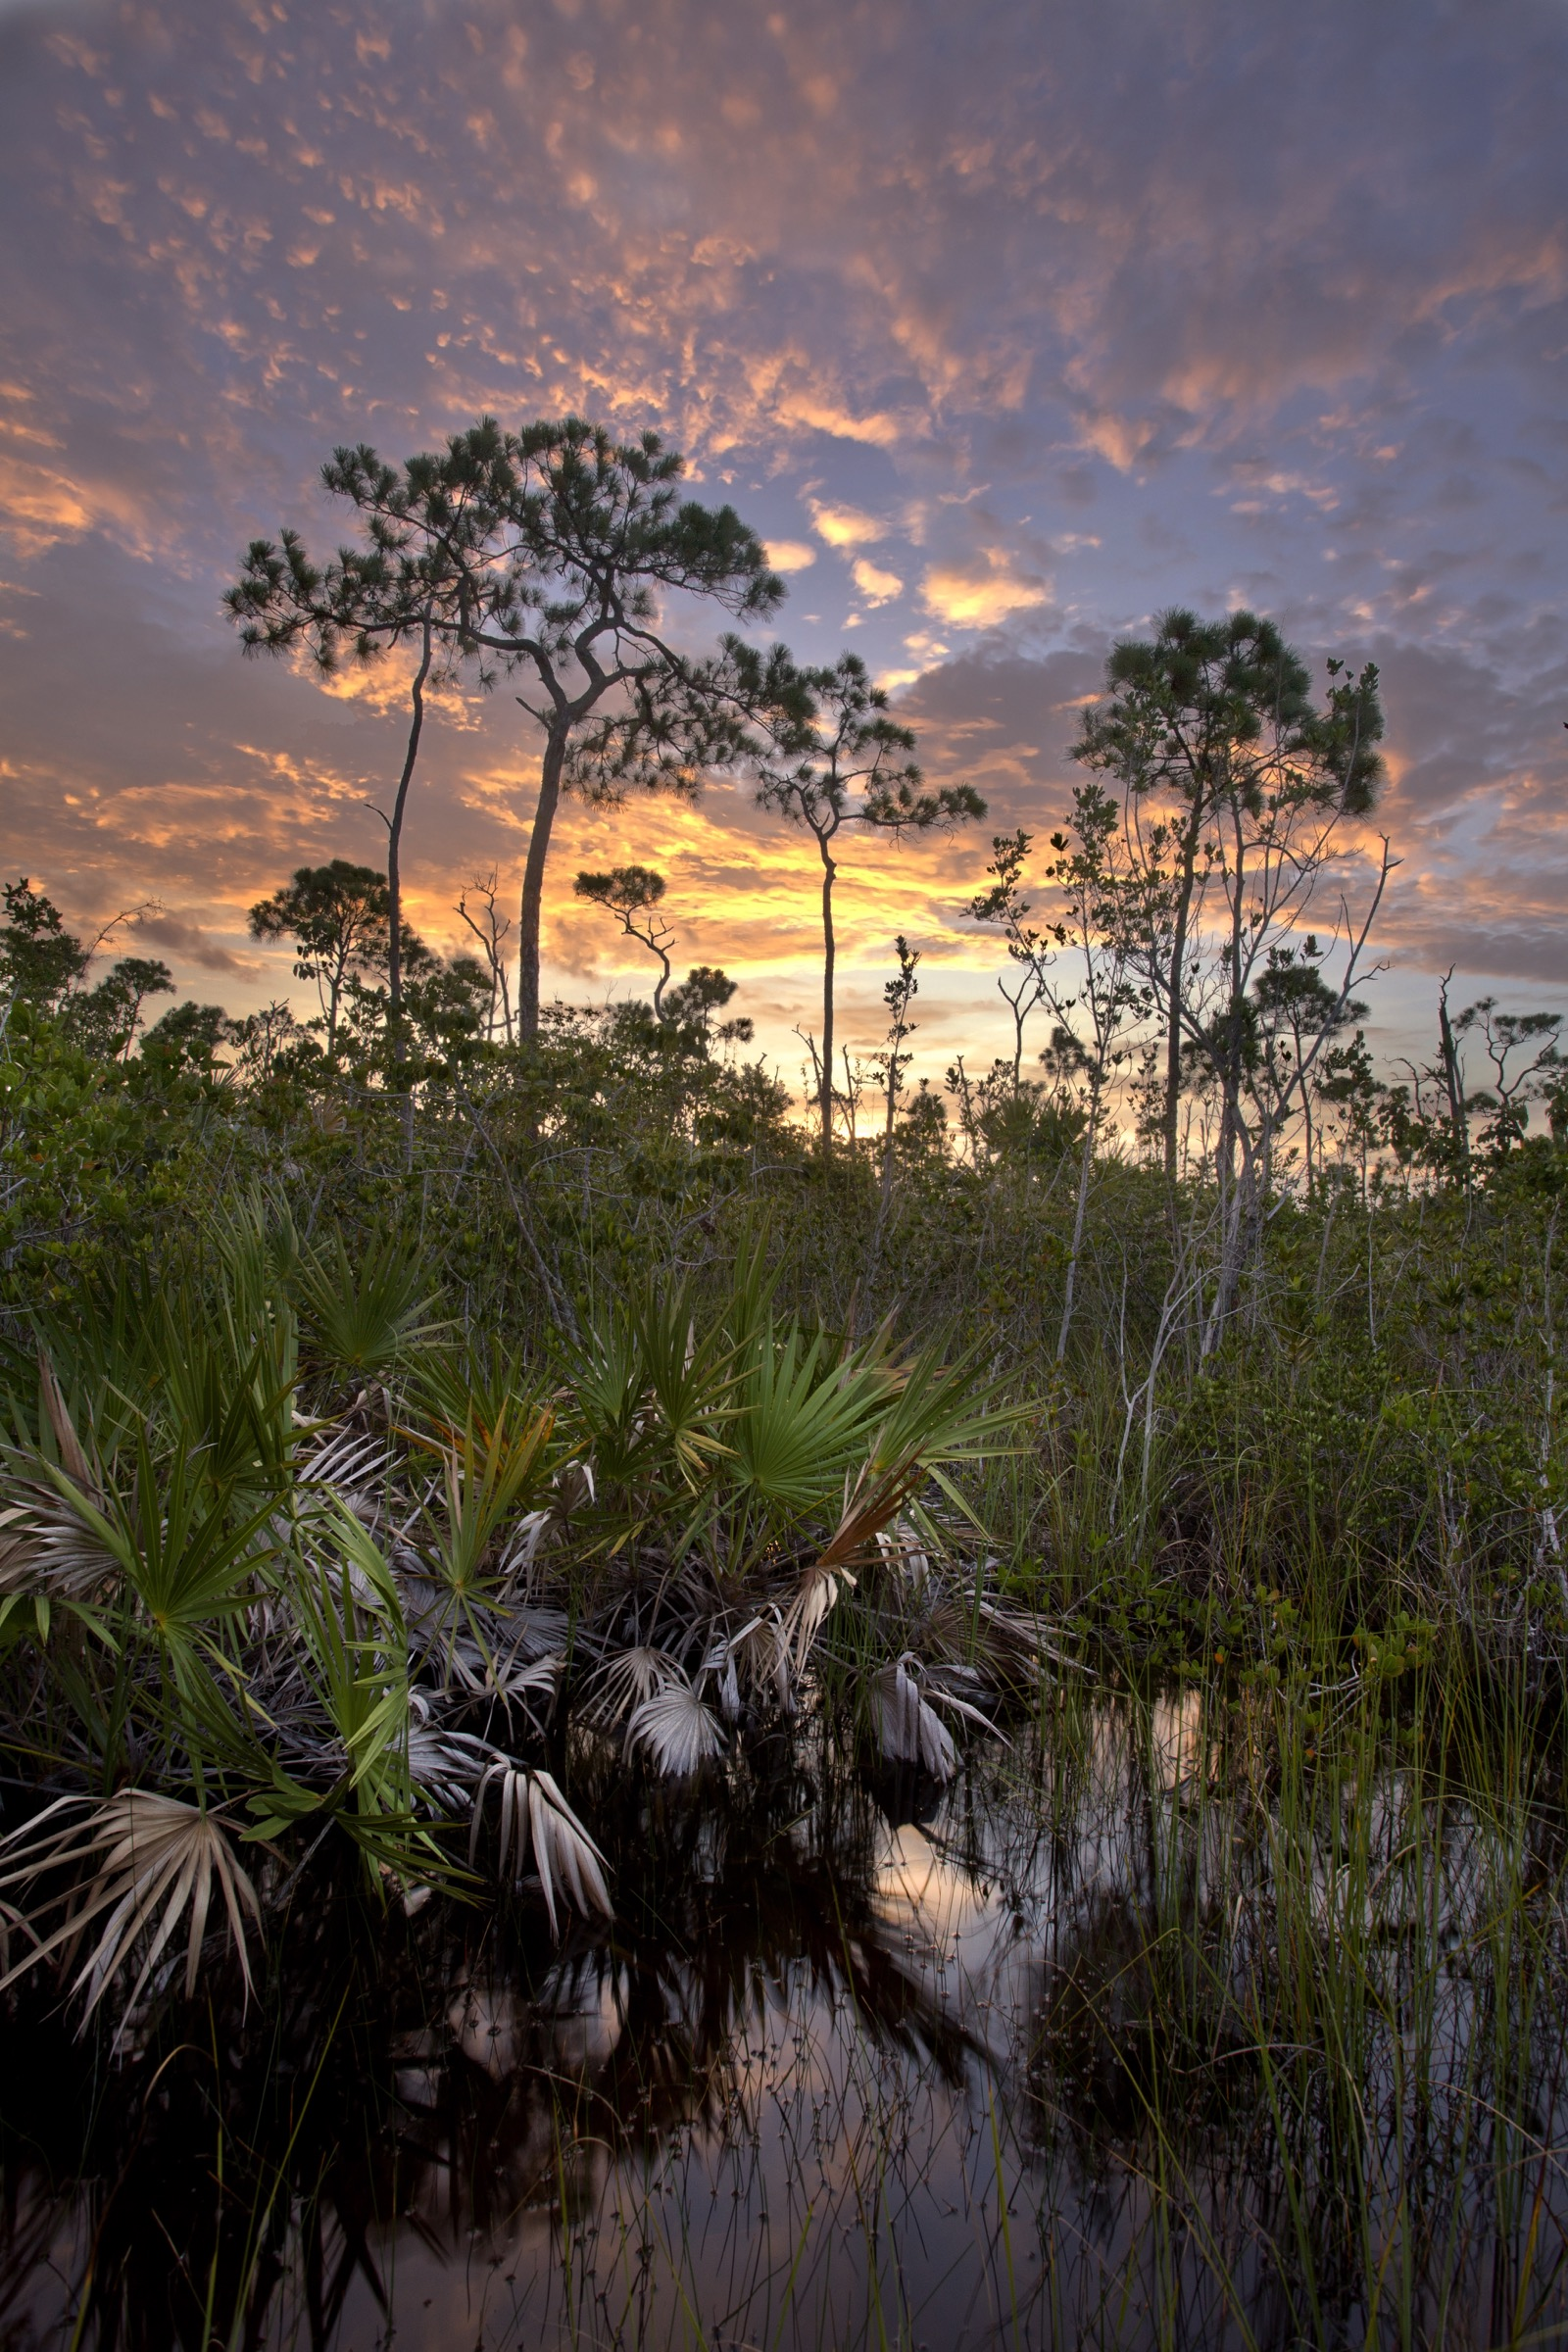 Florida's pine rockland ecosystem is underpinned by limestone and filled with slash pines, saw palmettos, poisonwood and a lush, herbaceous understory. It once covered nearly 200 square miles of south Florida. Photograph by Chad Anderson